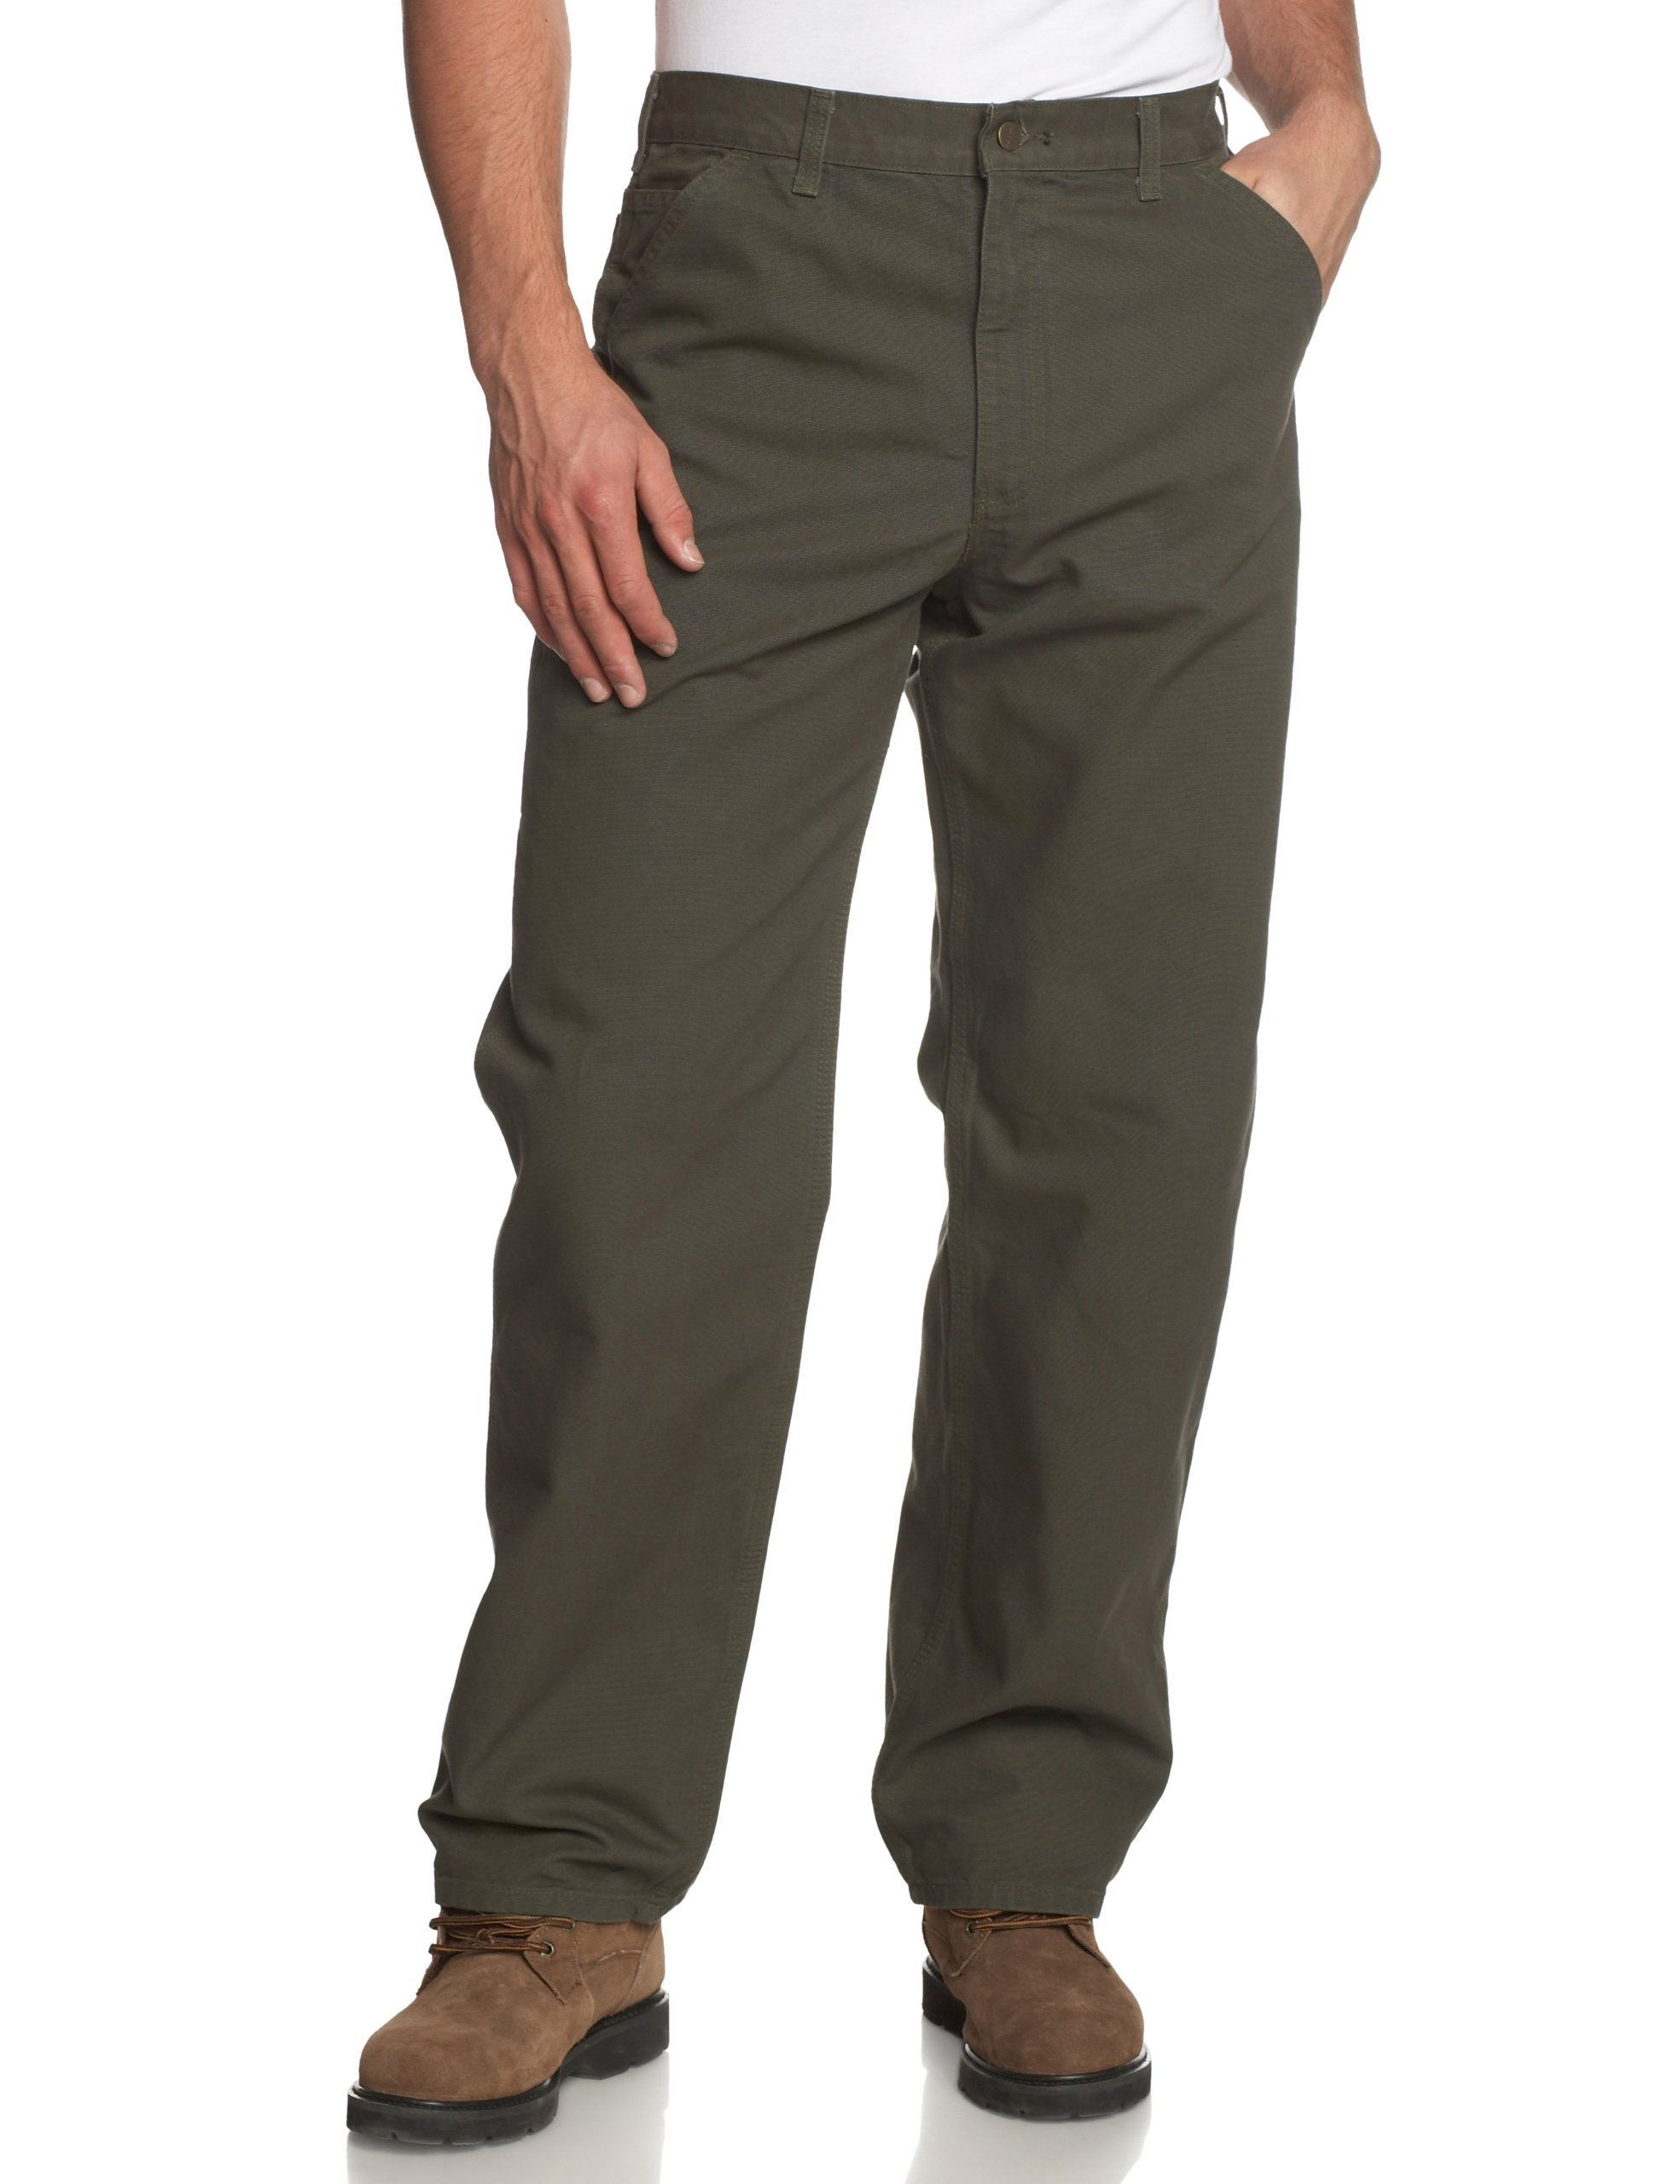 Carhartt Men's Washed Duck Work Dungaree Pant,Moss,38W x 30L